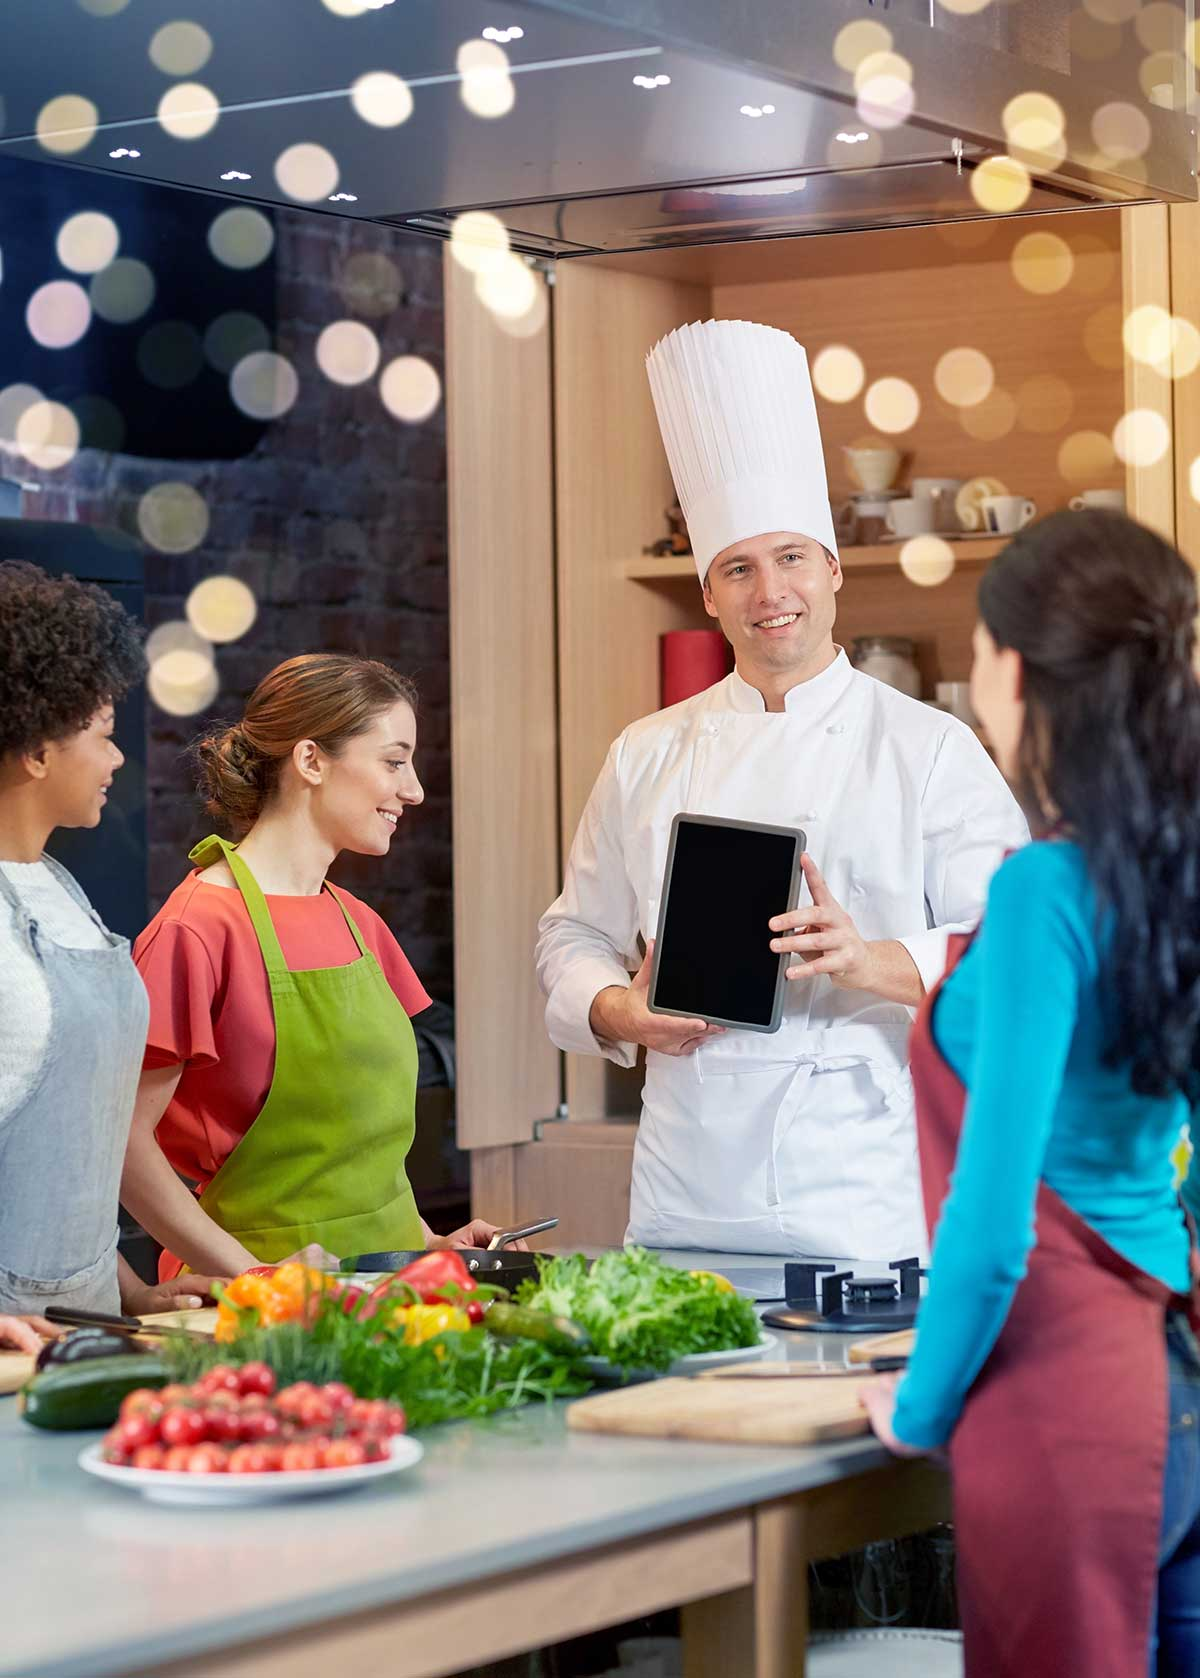 amroliving cooking classes - Home